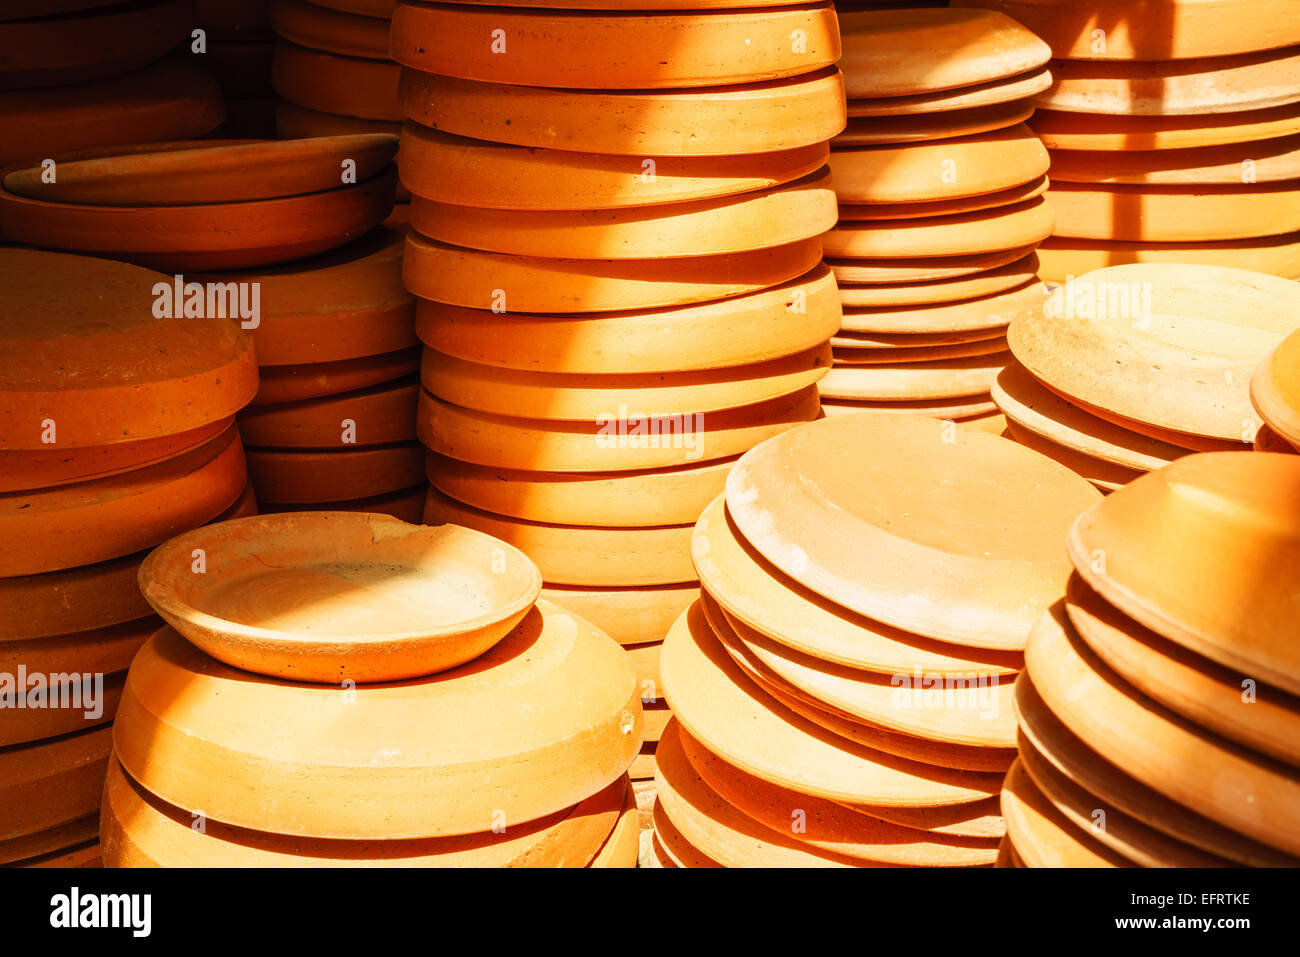 a bunch of terra-cotta flower pot saucers - Stock Image